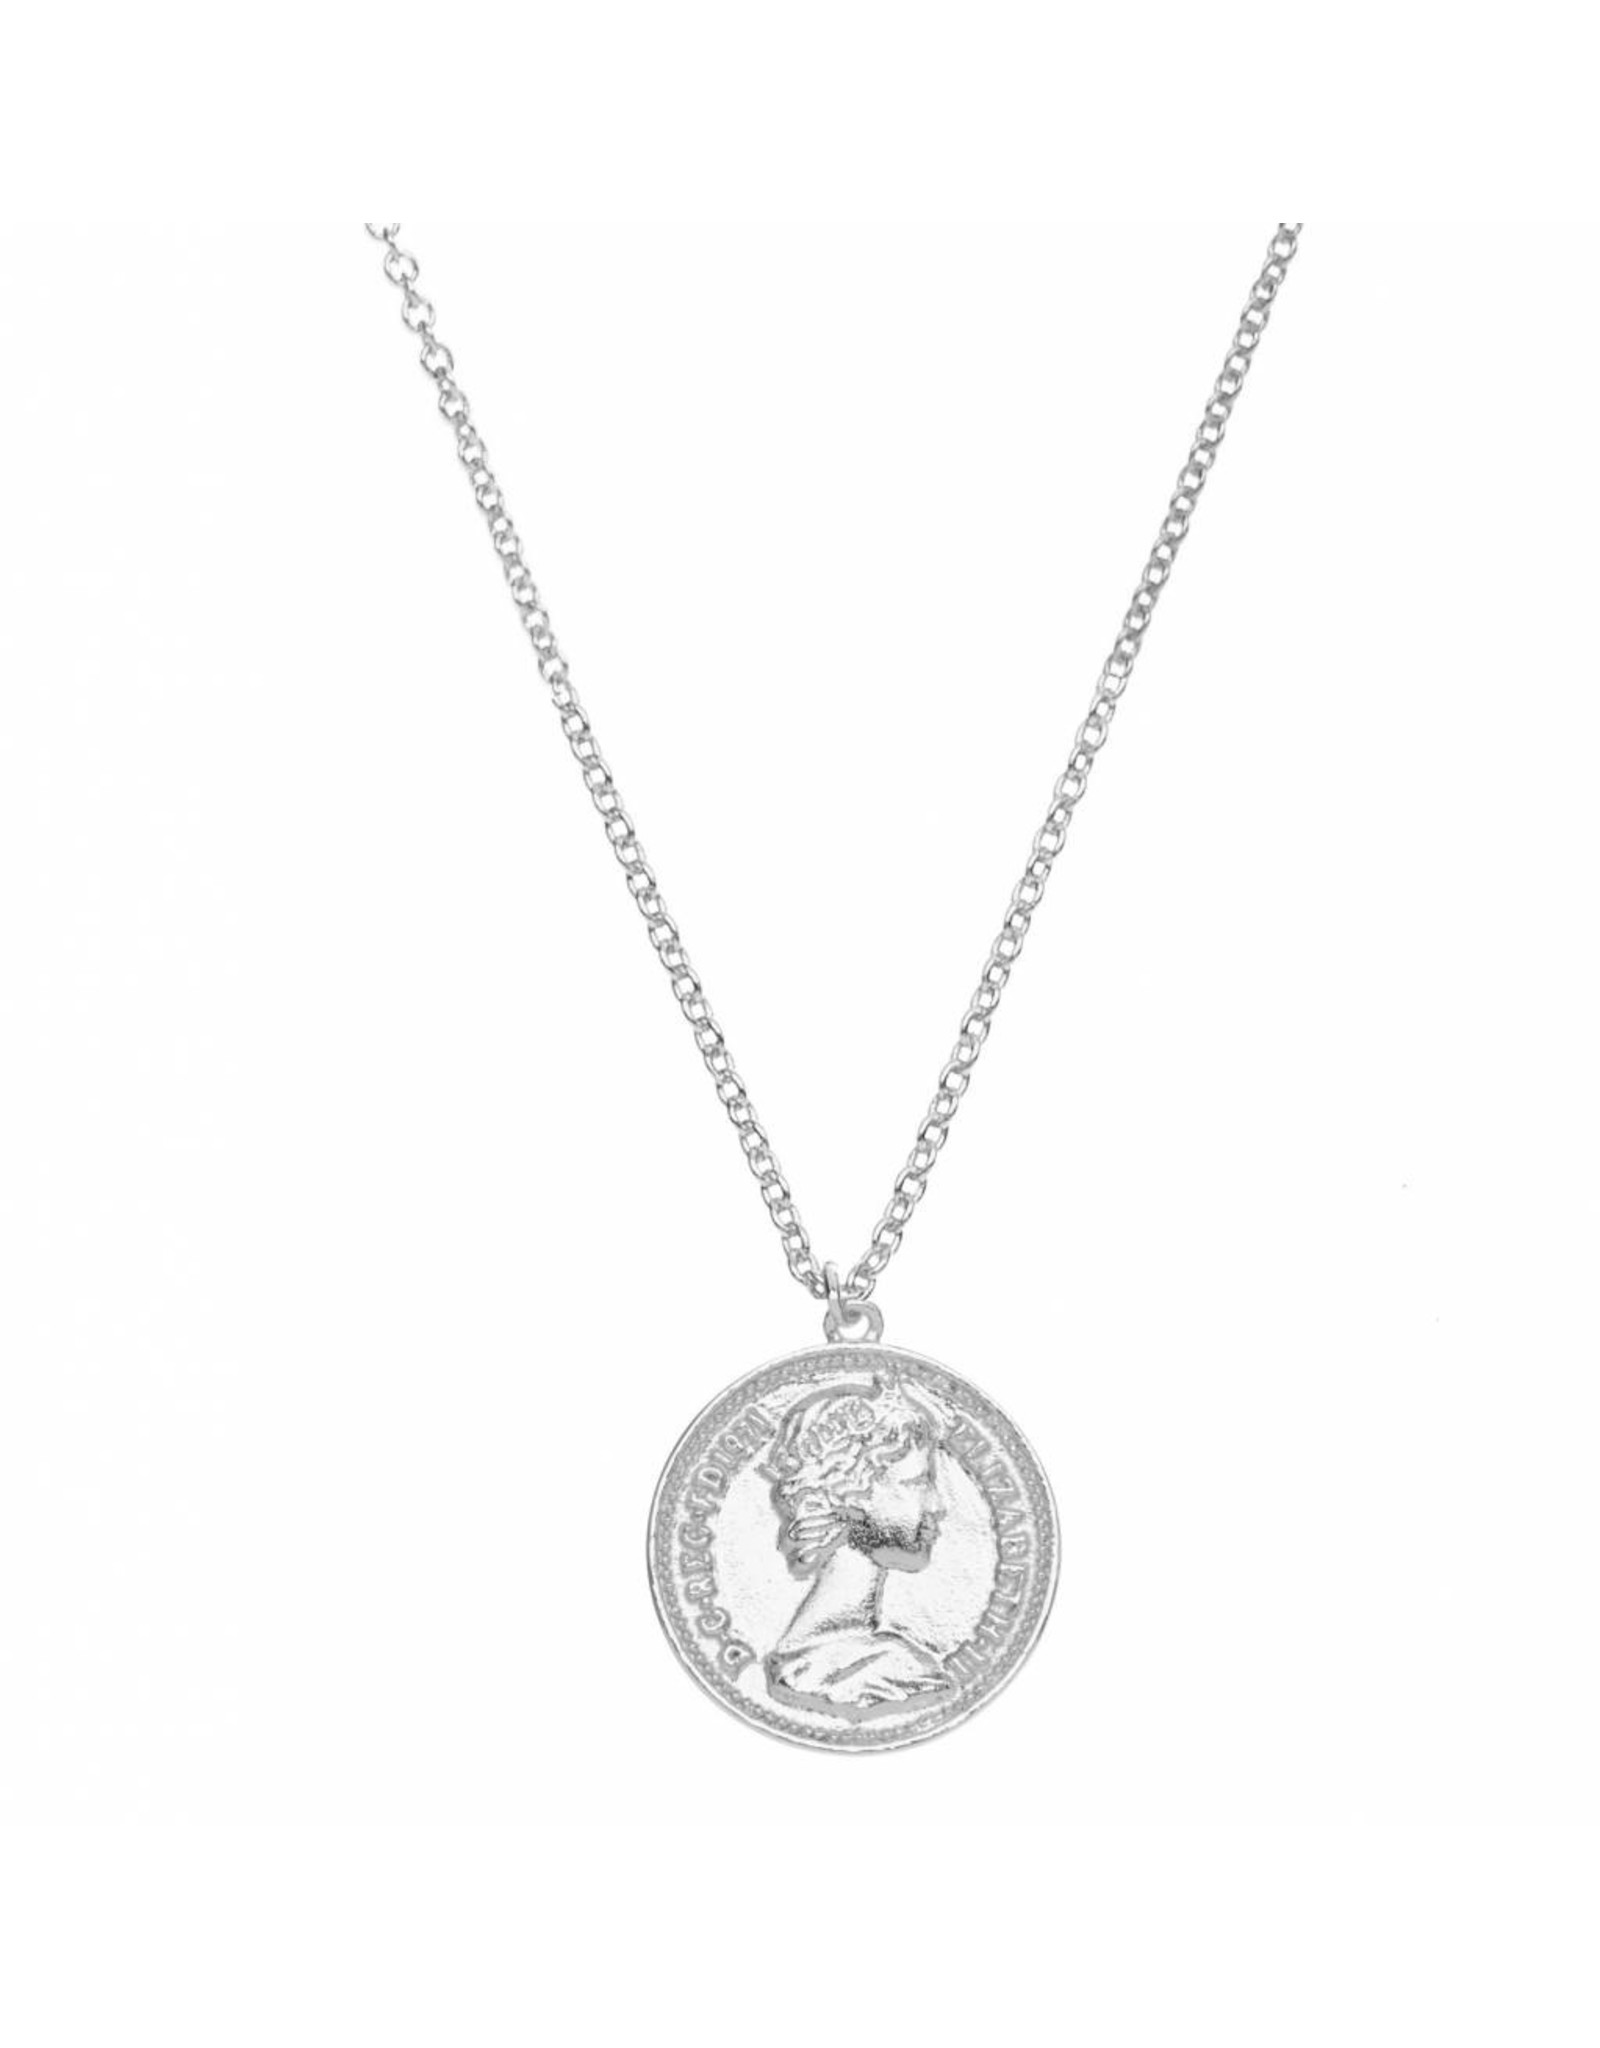 NECKLACE ROMA VINTAGE COIN SILVER